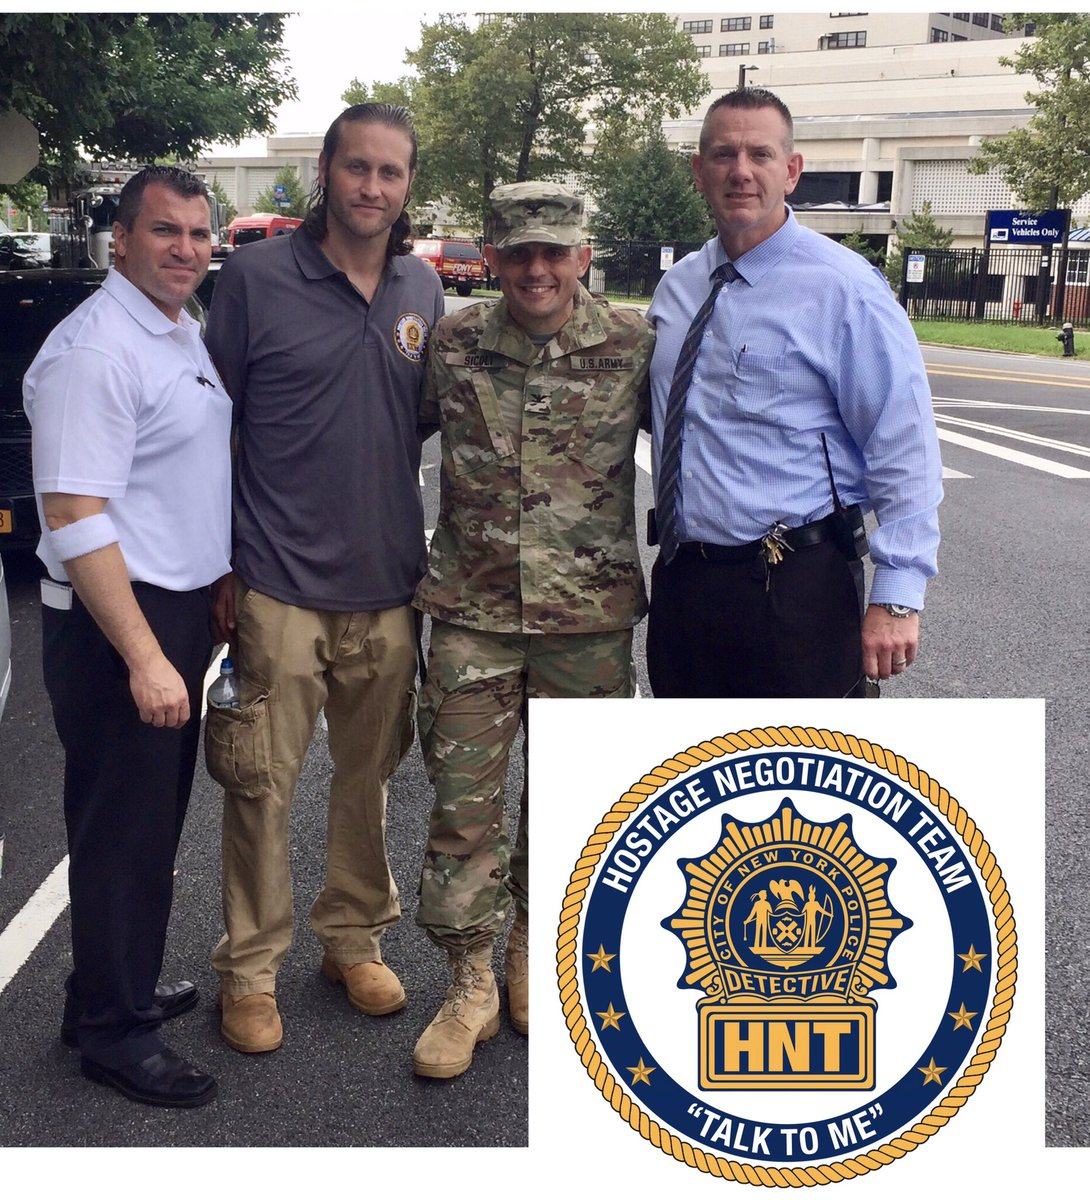 Our elite Hostage Negotiation Team & other NYPD units participated today in an interagency drill at Fort Hamilton  #NYPDprotecting@USArmy